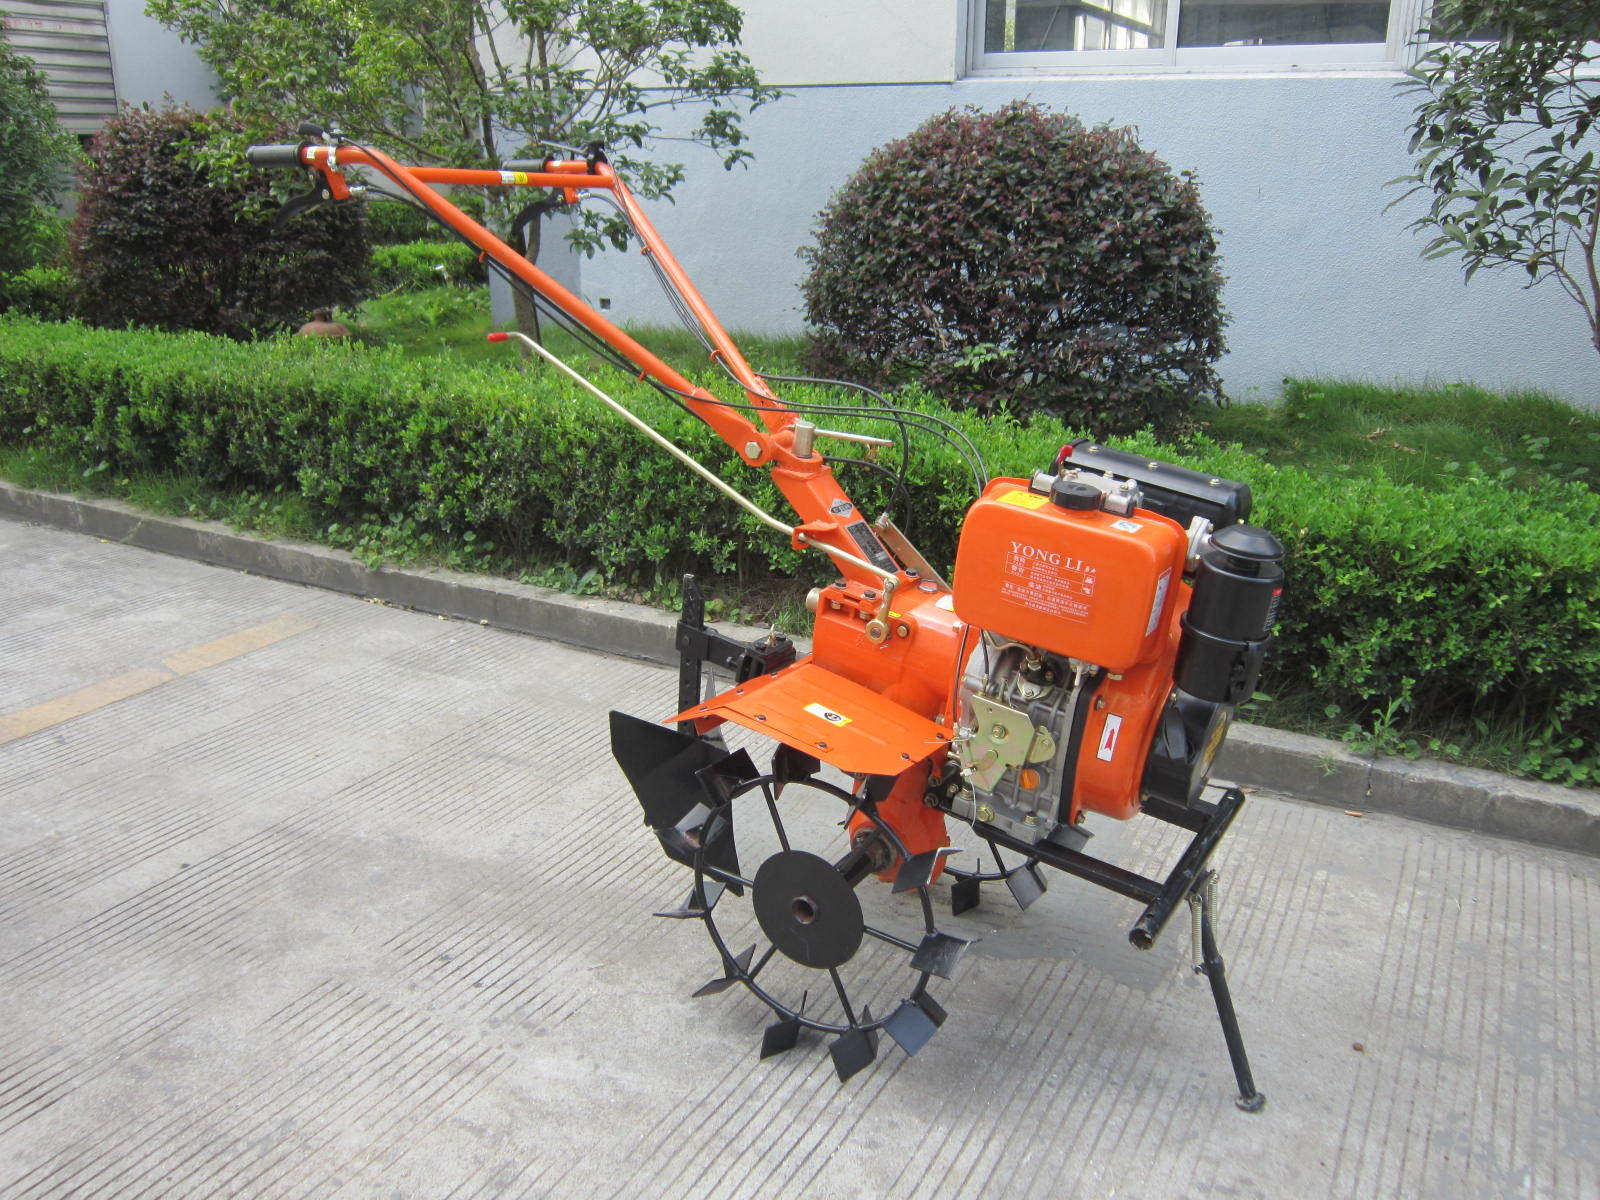 garden rear sold tine rototiller june snapper auction item sale tiller for